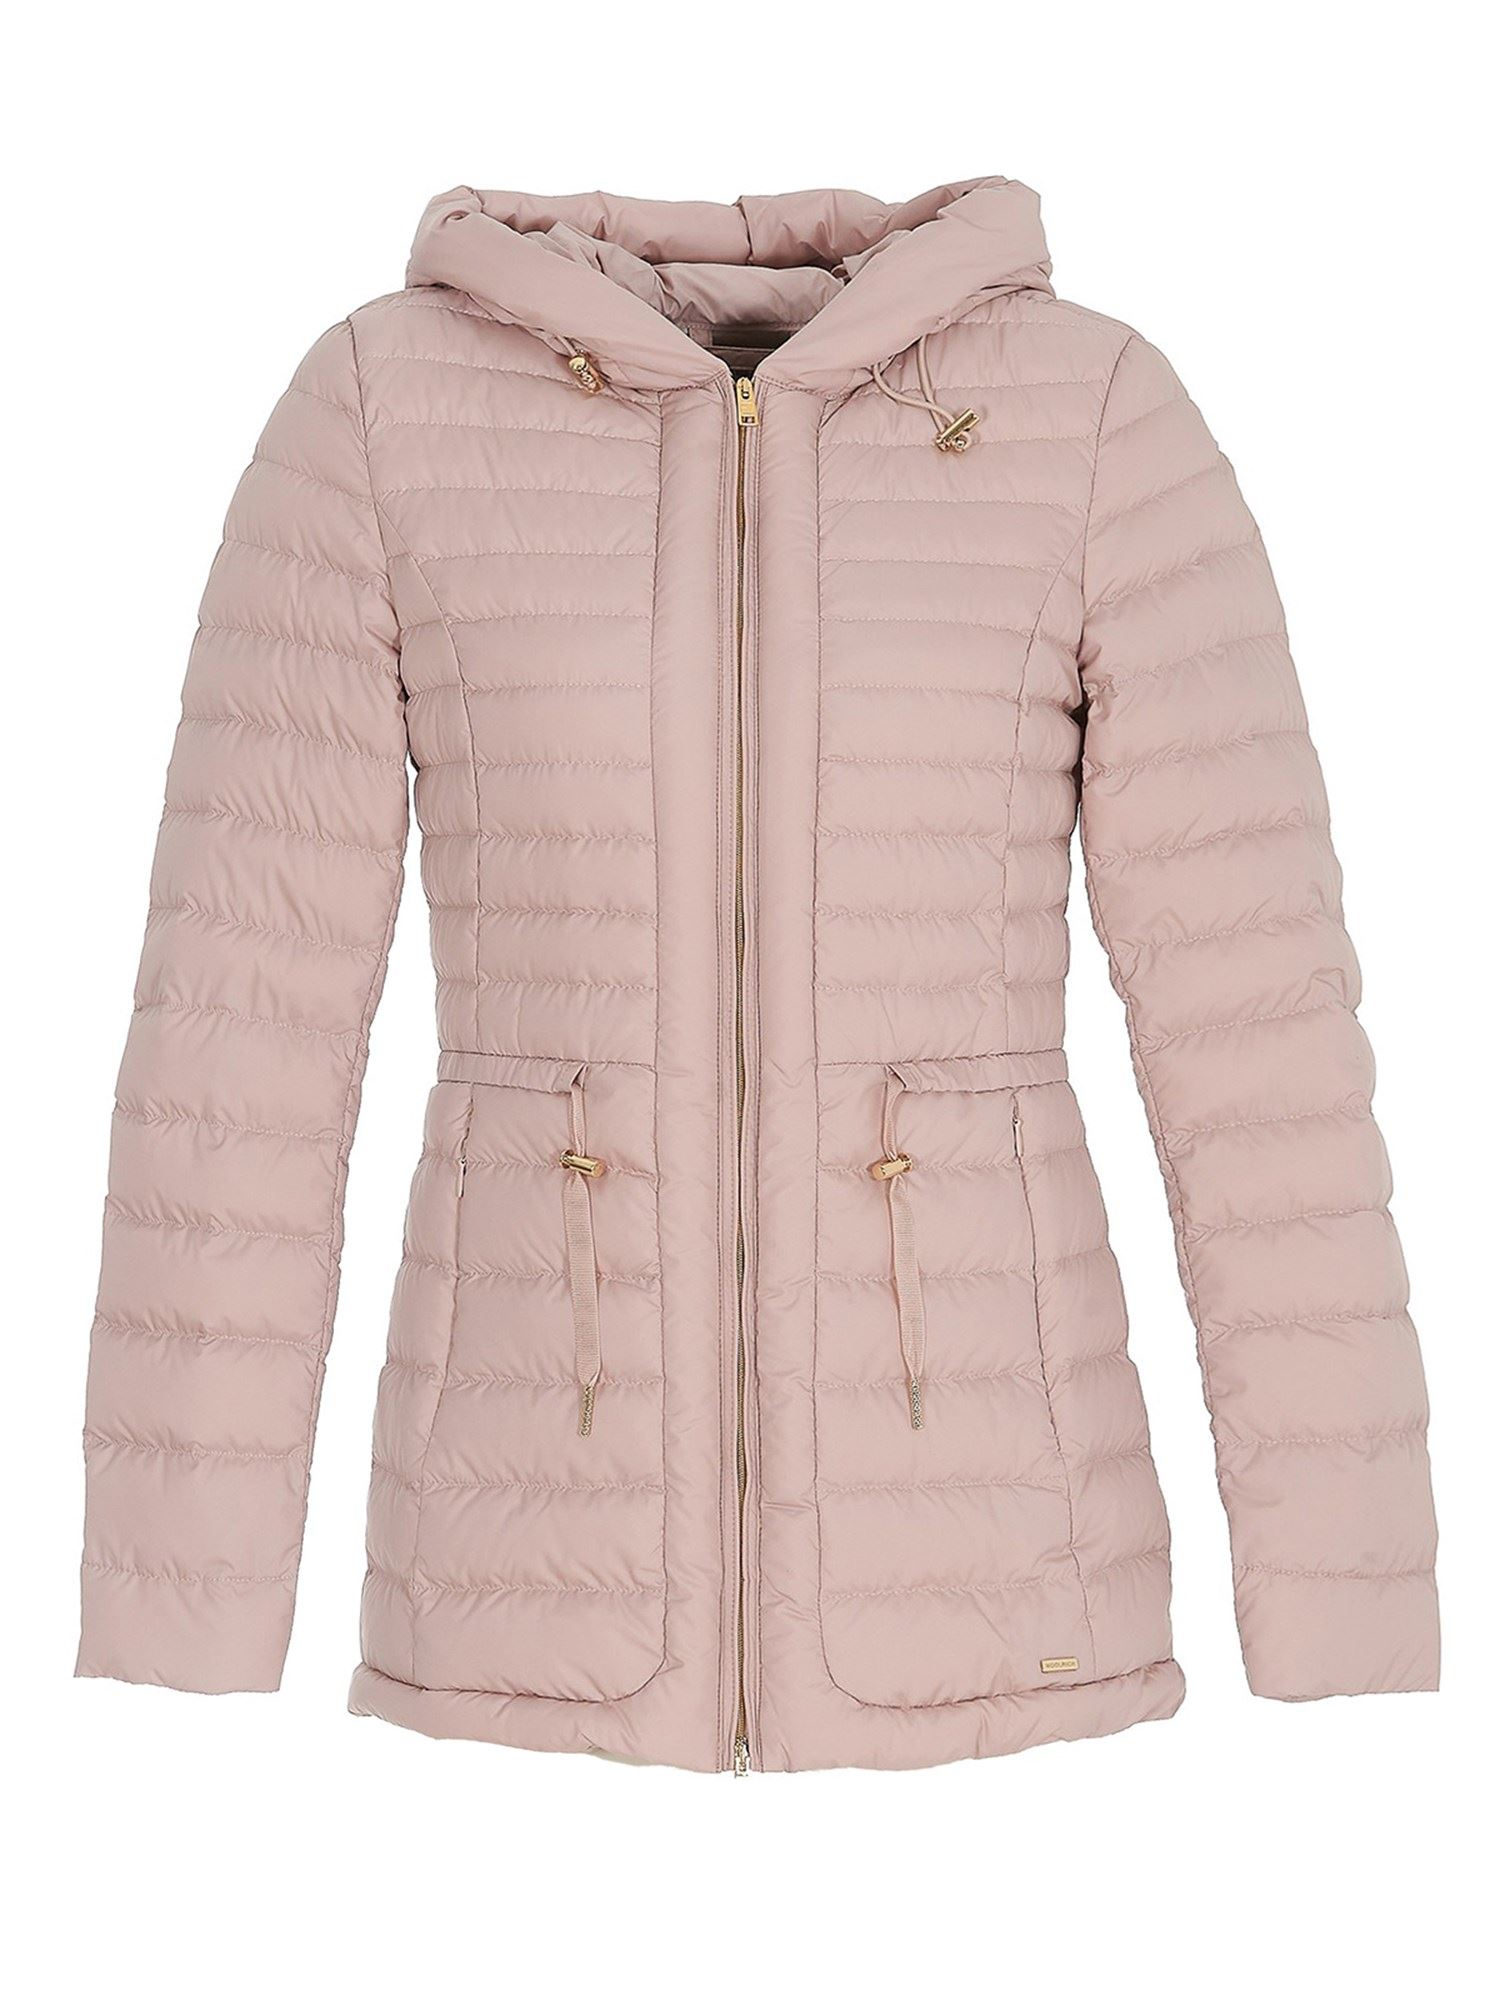 Woolrich QUILTED PUFFER JACKET IN PINK